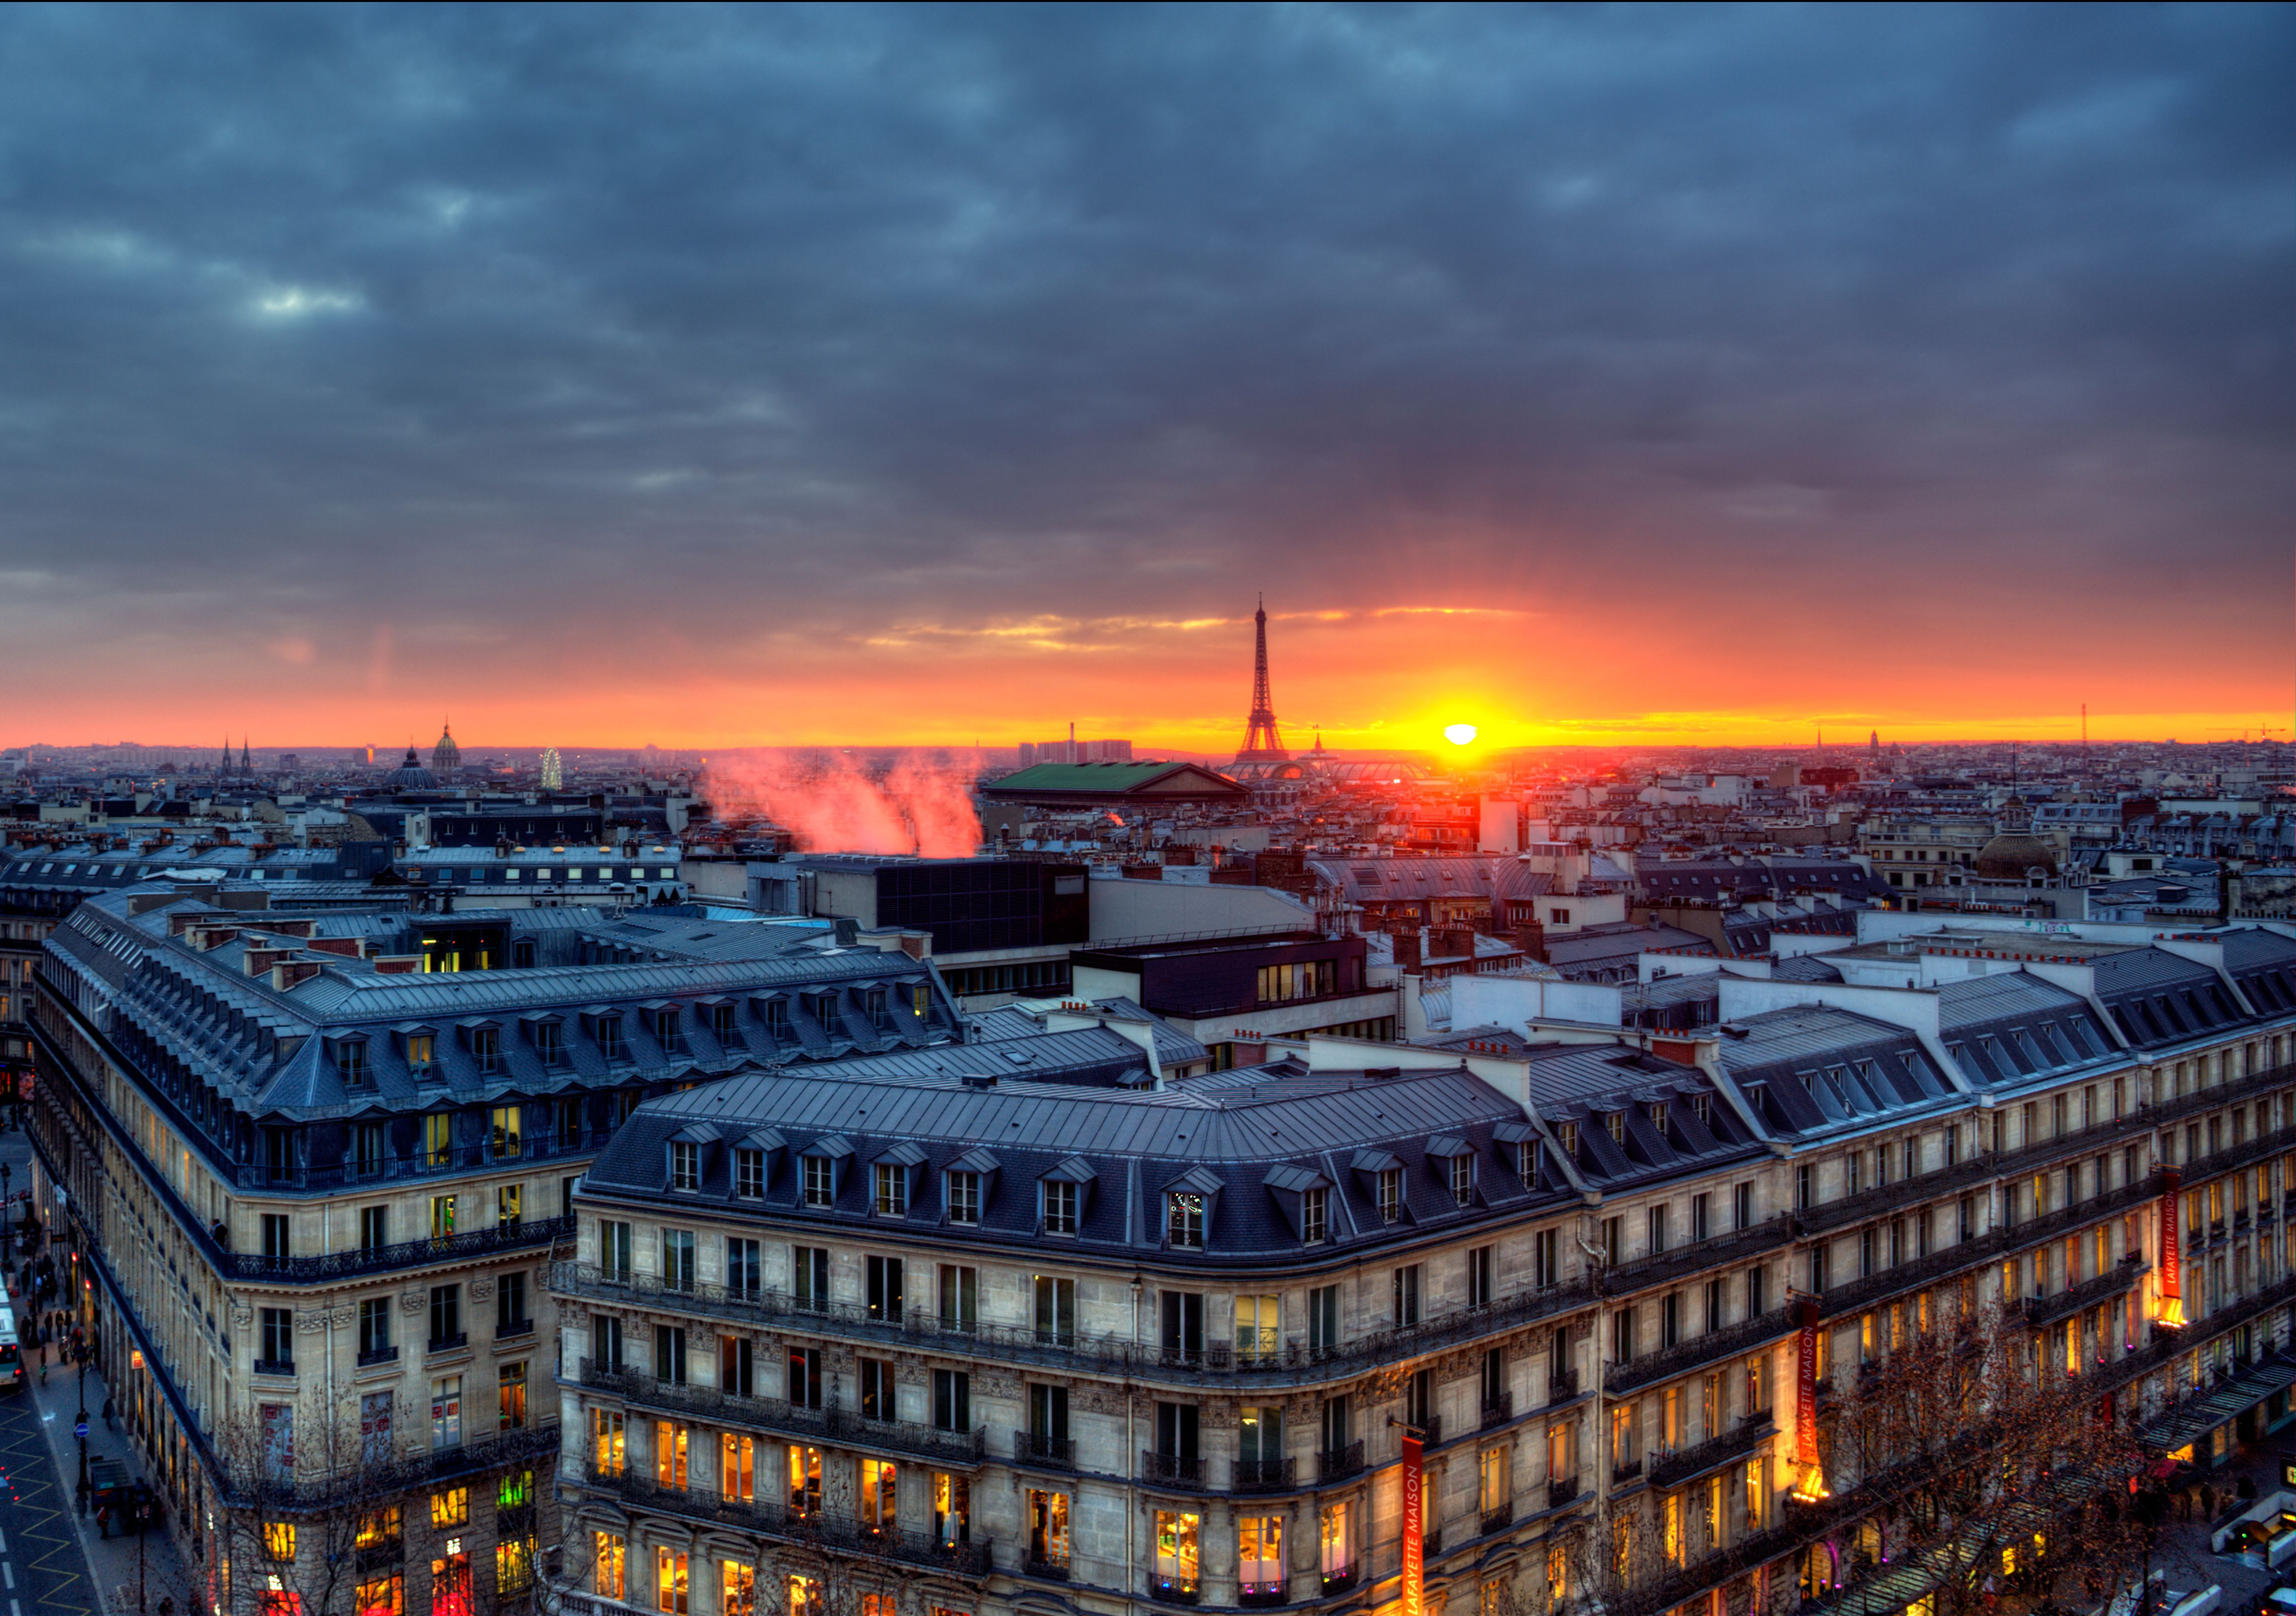 The rooftops of Paris at sunset: little could be more iconic.